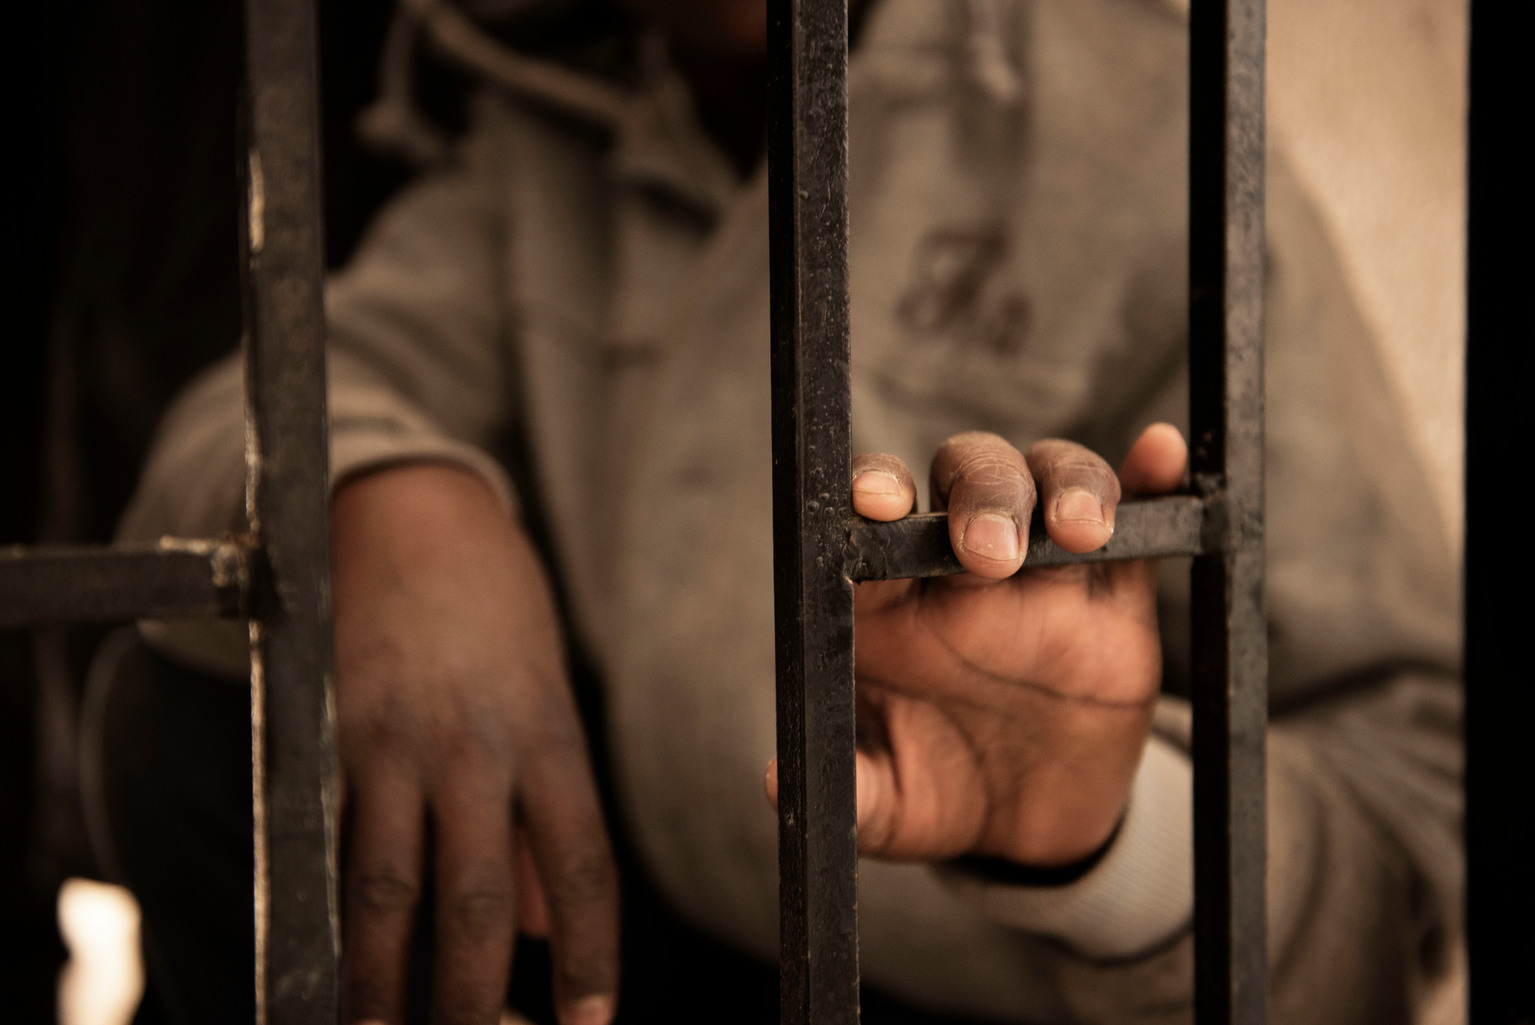 "Fourteen-year-old Issaa, a migrant from Niger, rests his hand on a gate inside a detention centre, in Libya, Saturday 28 January 2017. Issaa, who has five younger brothers, said his mother died two years ago in Niger. ""I left Niger two and a half years ago"", he says sitting on one of the dozens of dirty mattresses on the floor. ""My father collected money for my journey, he wished me good luck and then let me go. Once I arrived in Libya I started to look for a job."" When Issaa was 12 years old, he began to work on a farm. He worked for less than thirty dollars a month, taking care of the farm and feeding the animals. He managed to set aside US$450, which he hoped would pay for a crossing by boat to Italy. He was arrested and detained before he was able to board a boat. At the time of UNICEF's visit to the detention centre there were ten women, three children and 51 men being held. Issa was the youngest unaccompanied minor in detention. The men's and women's areas are on the same floor, divided only by a locked gate with a padlock. The women being detained were all arrested in Sirte during a recent military offensive. As such they were being detained ""pending interrogation"" and were not classified as illegal migrants. Libya is a country in turmoil. Since 2014 security is precarious, living is hard, and violence is commonplace. The country is riven with militias in conflict with each other or Government forces. Thousands of children and women hoping to reach Europe travel from Africa and the Middle East to the sea in Libya. They endure exploitation, abuse, violence and detention. In 2016, 181,000 migrants used the route to reach Italy, 25,800 were unaccompanied children. Children and women making the journey live in the shadows, unprotected, outside the law, and reliant on smugglers. Migrants are easy prey and the average number in detention is 6000-7000, depending on the season. The international community, including UNICEF, only has access to some of t"